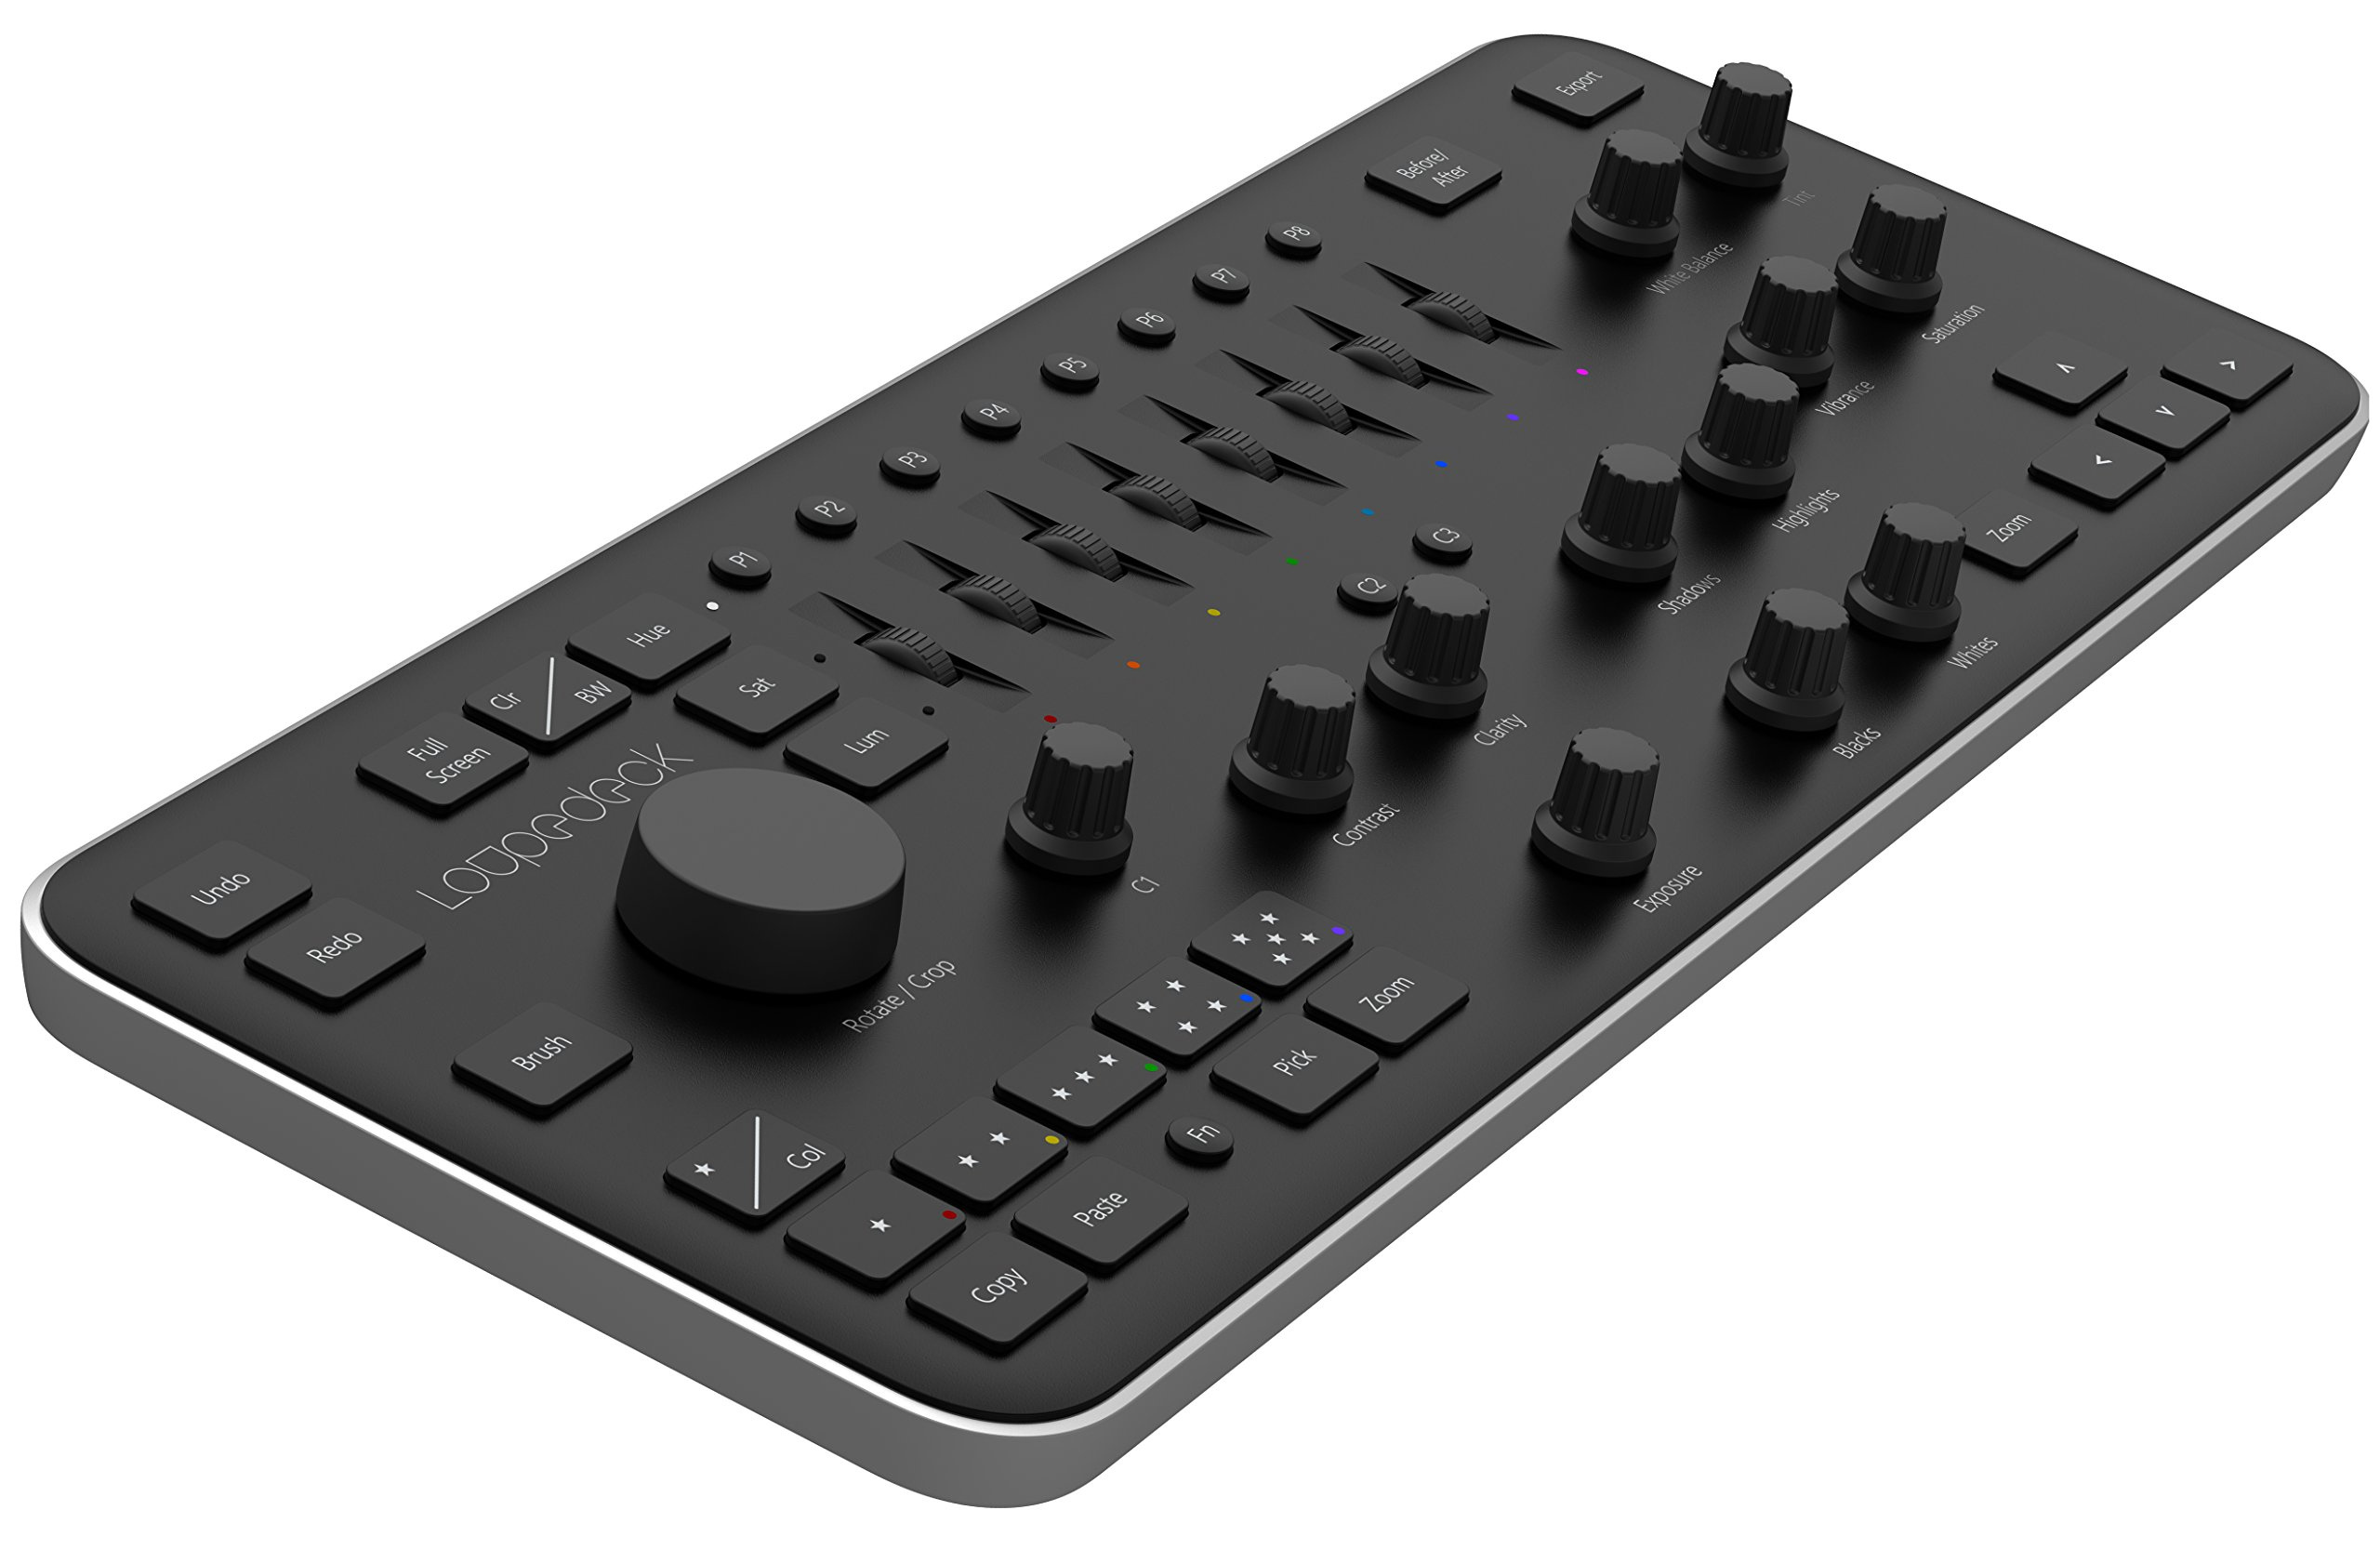 Loupedeck Photo Editing Console and Lightroom Keyboard for Adobe Lightroom 6 or Lightroom CC by Loupedeck